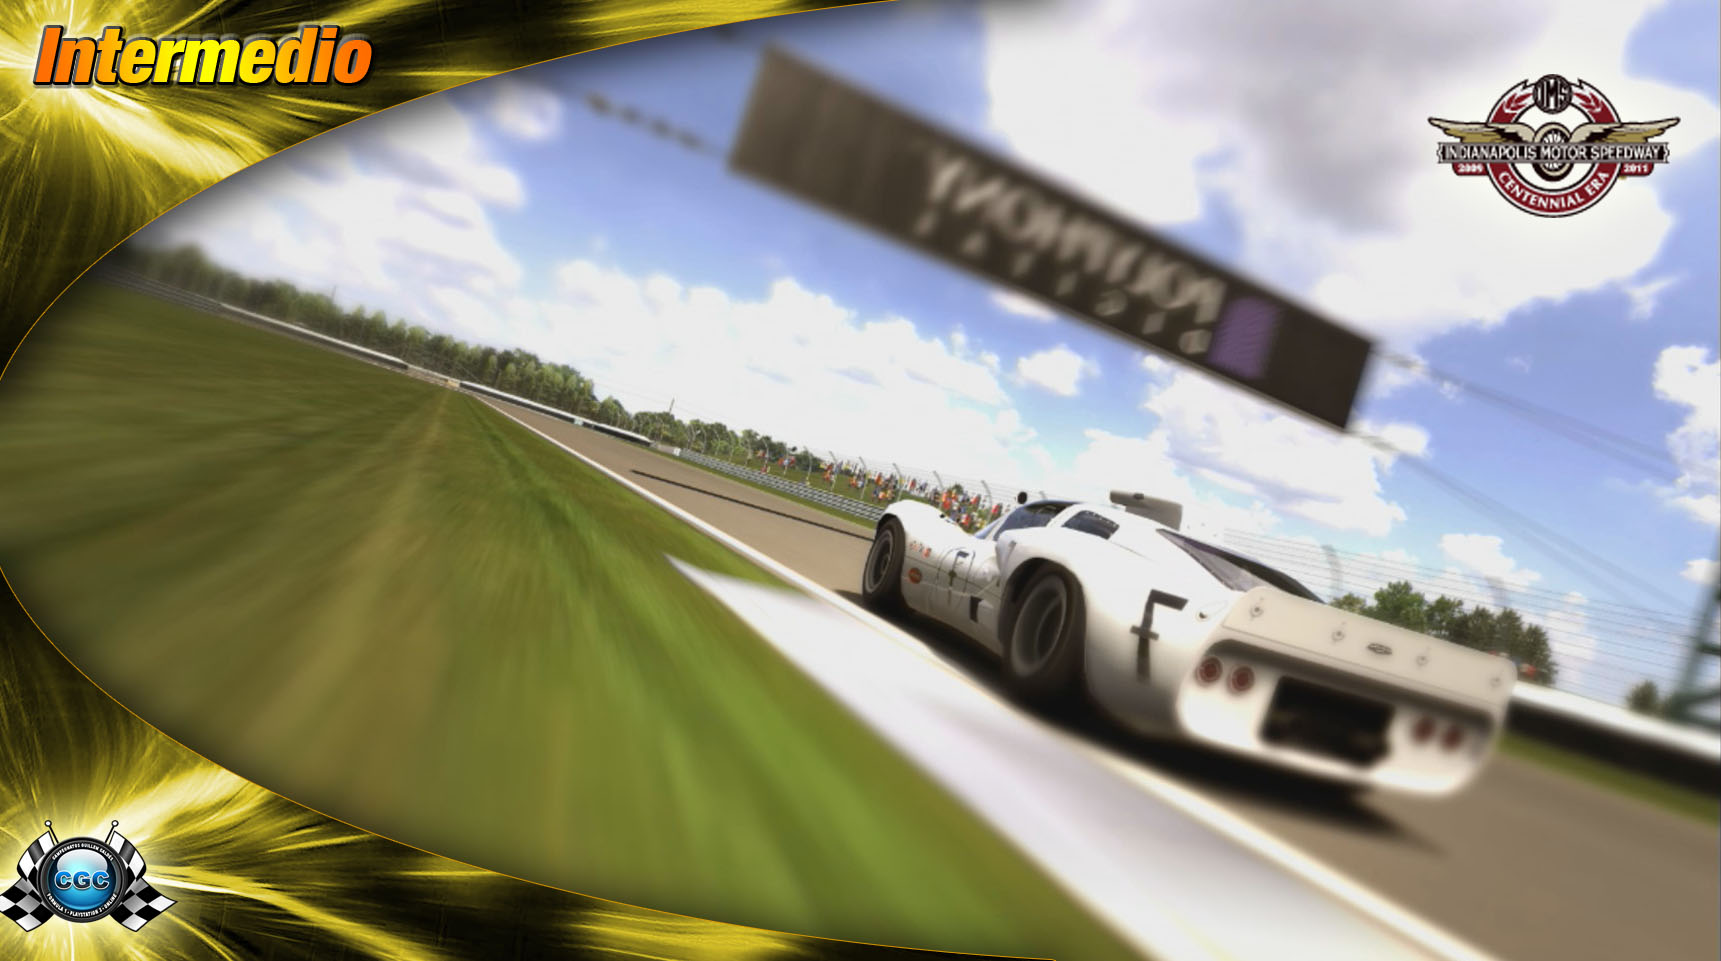 Tag 91 en PC PS3 PS4 Online | CGC | F1 rFactor GT6 RBR Project Cars Chapa10